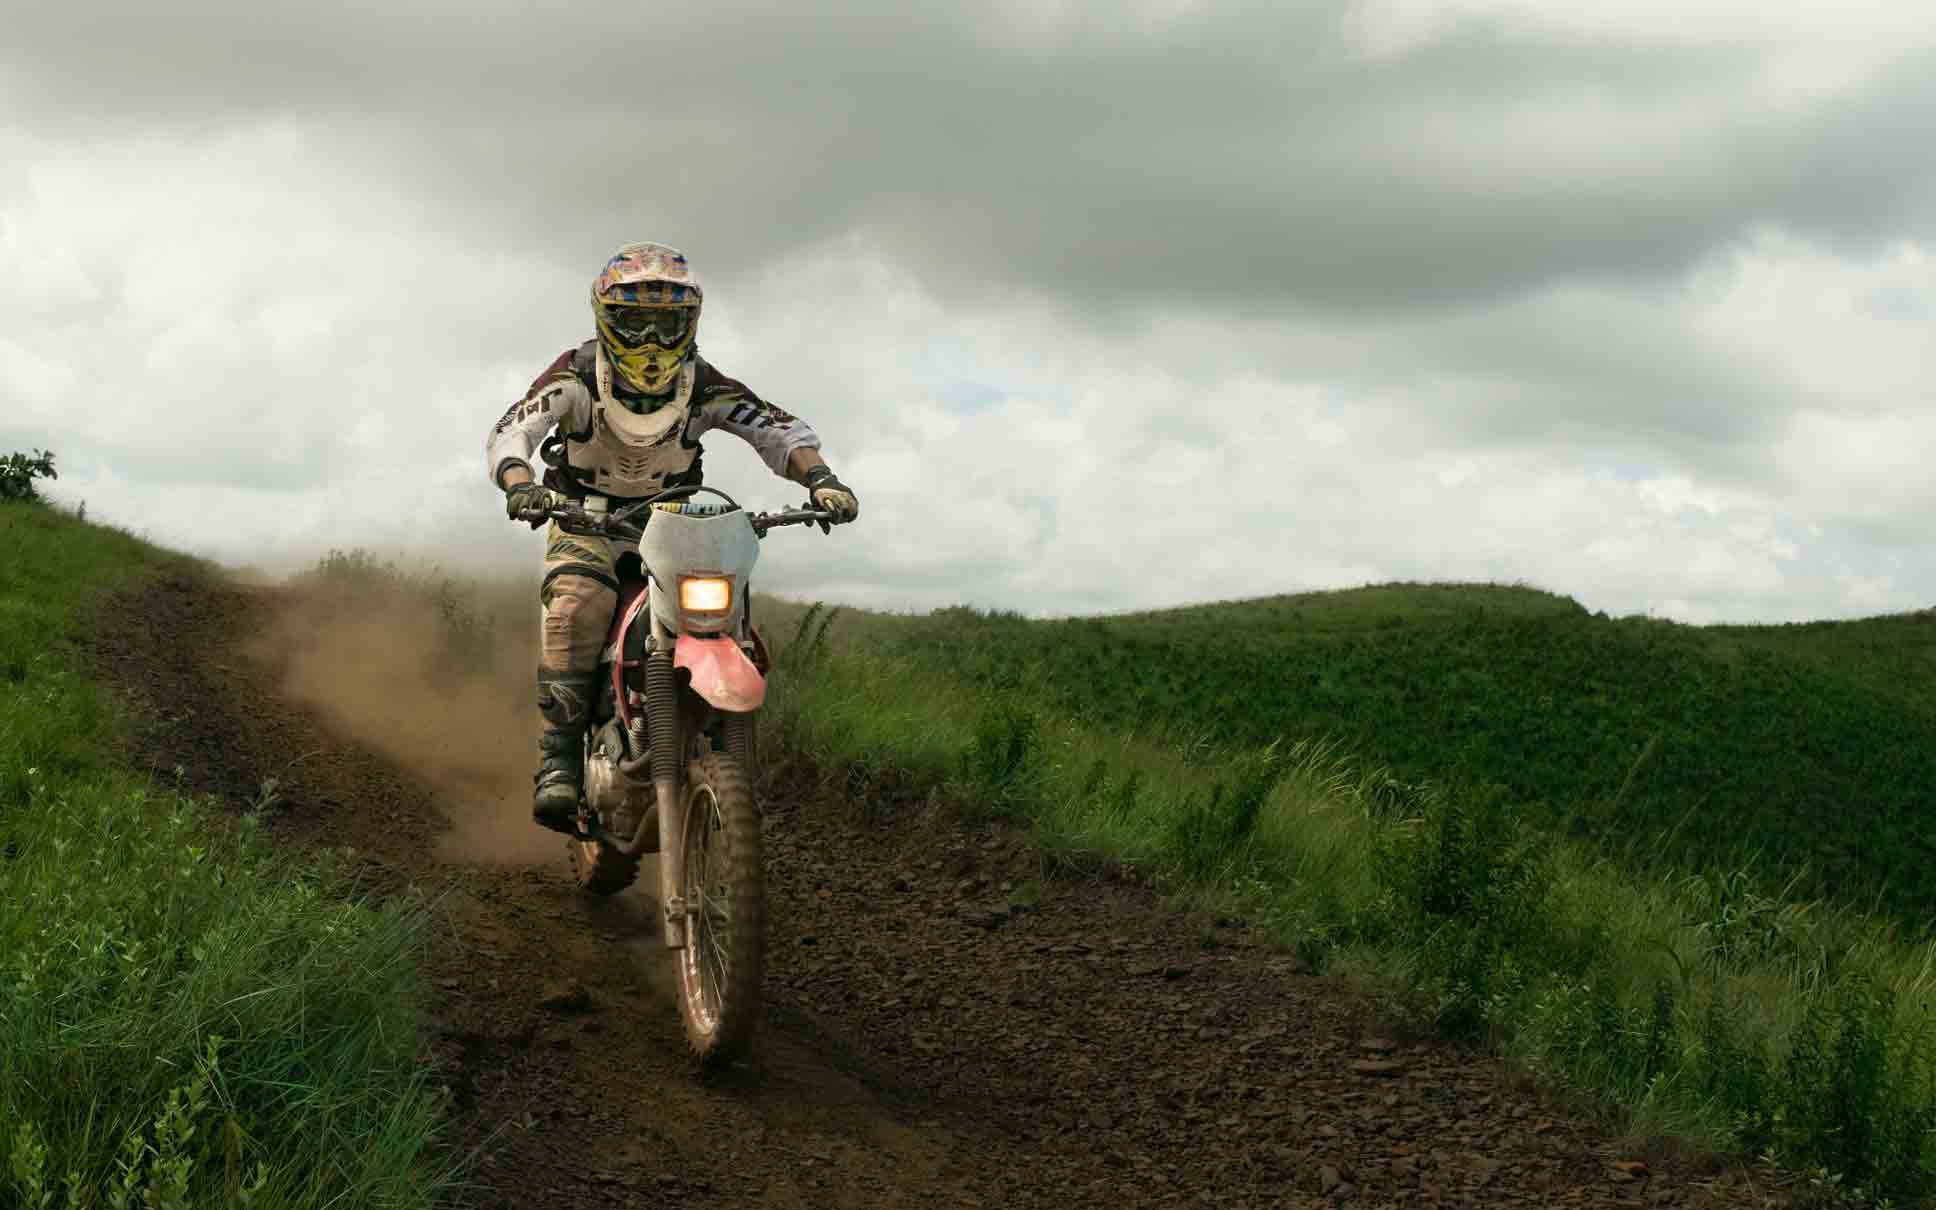 off-road-dirt-bike-tips-for-beginner